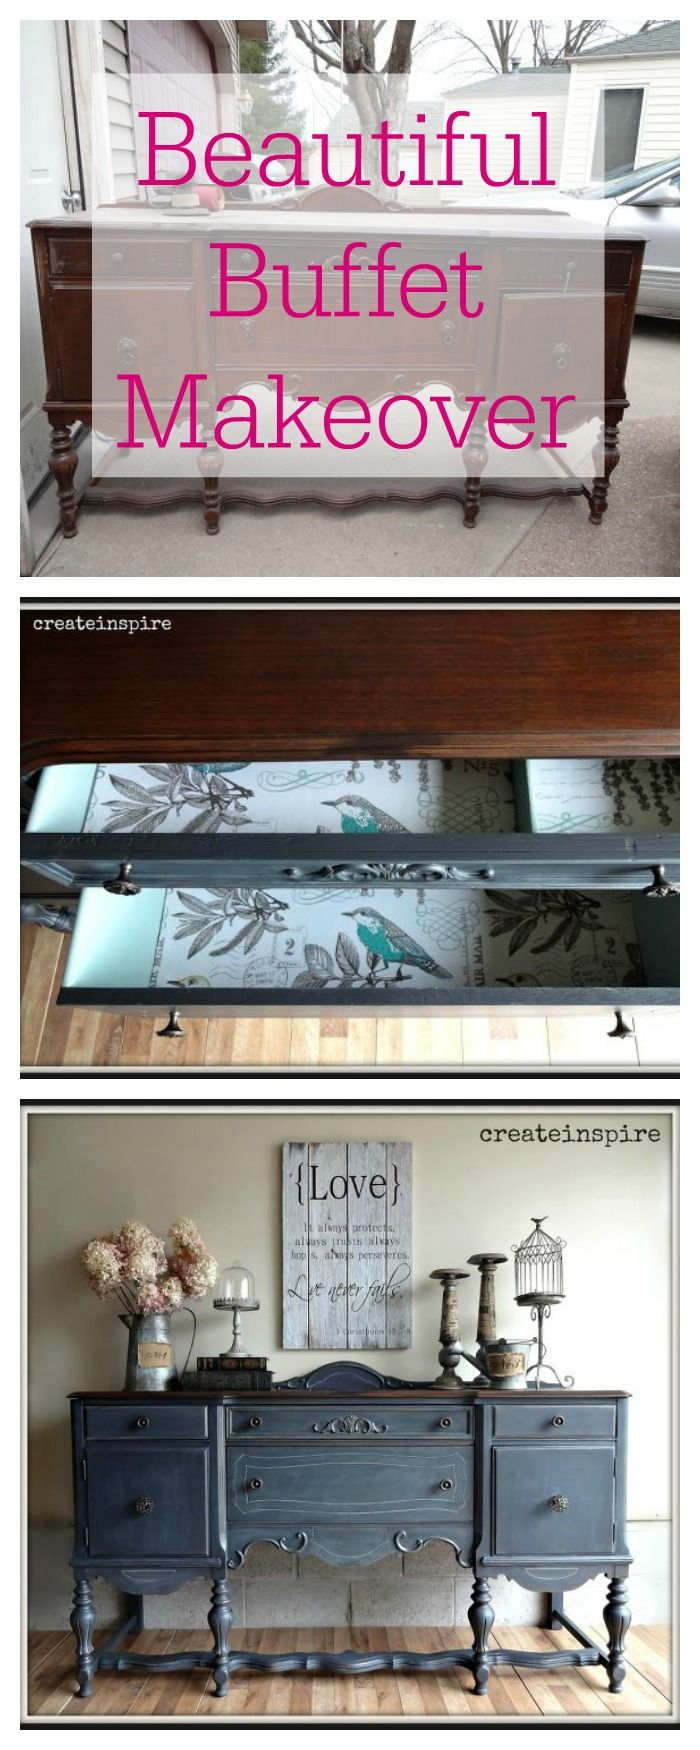 DIY - This buffet was brought home from a barn and given a beautiful makeover.: